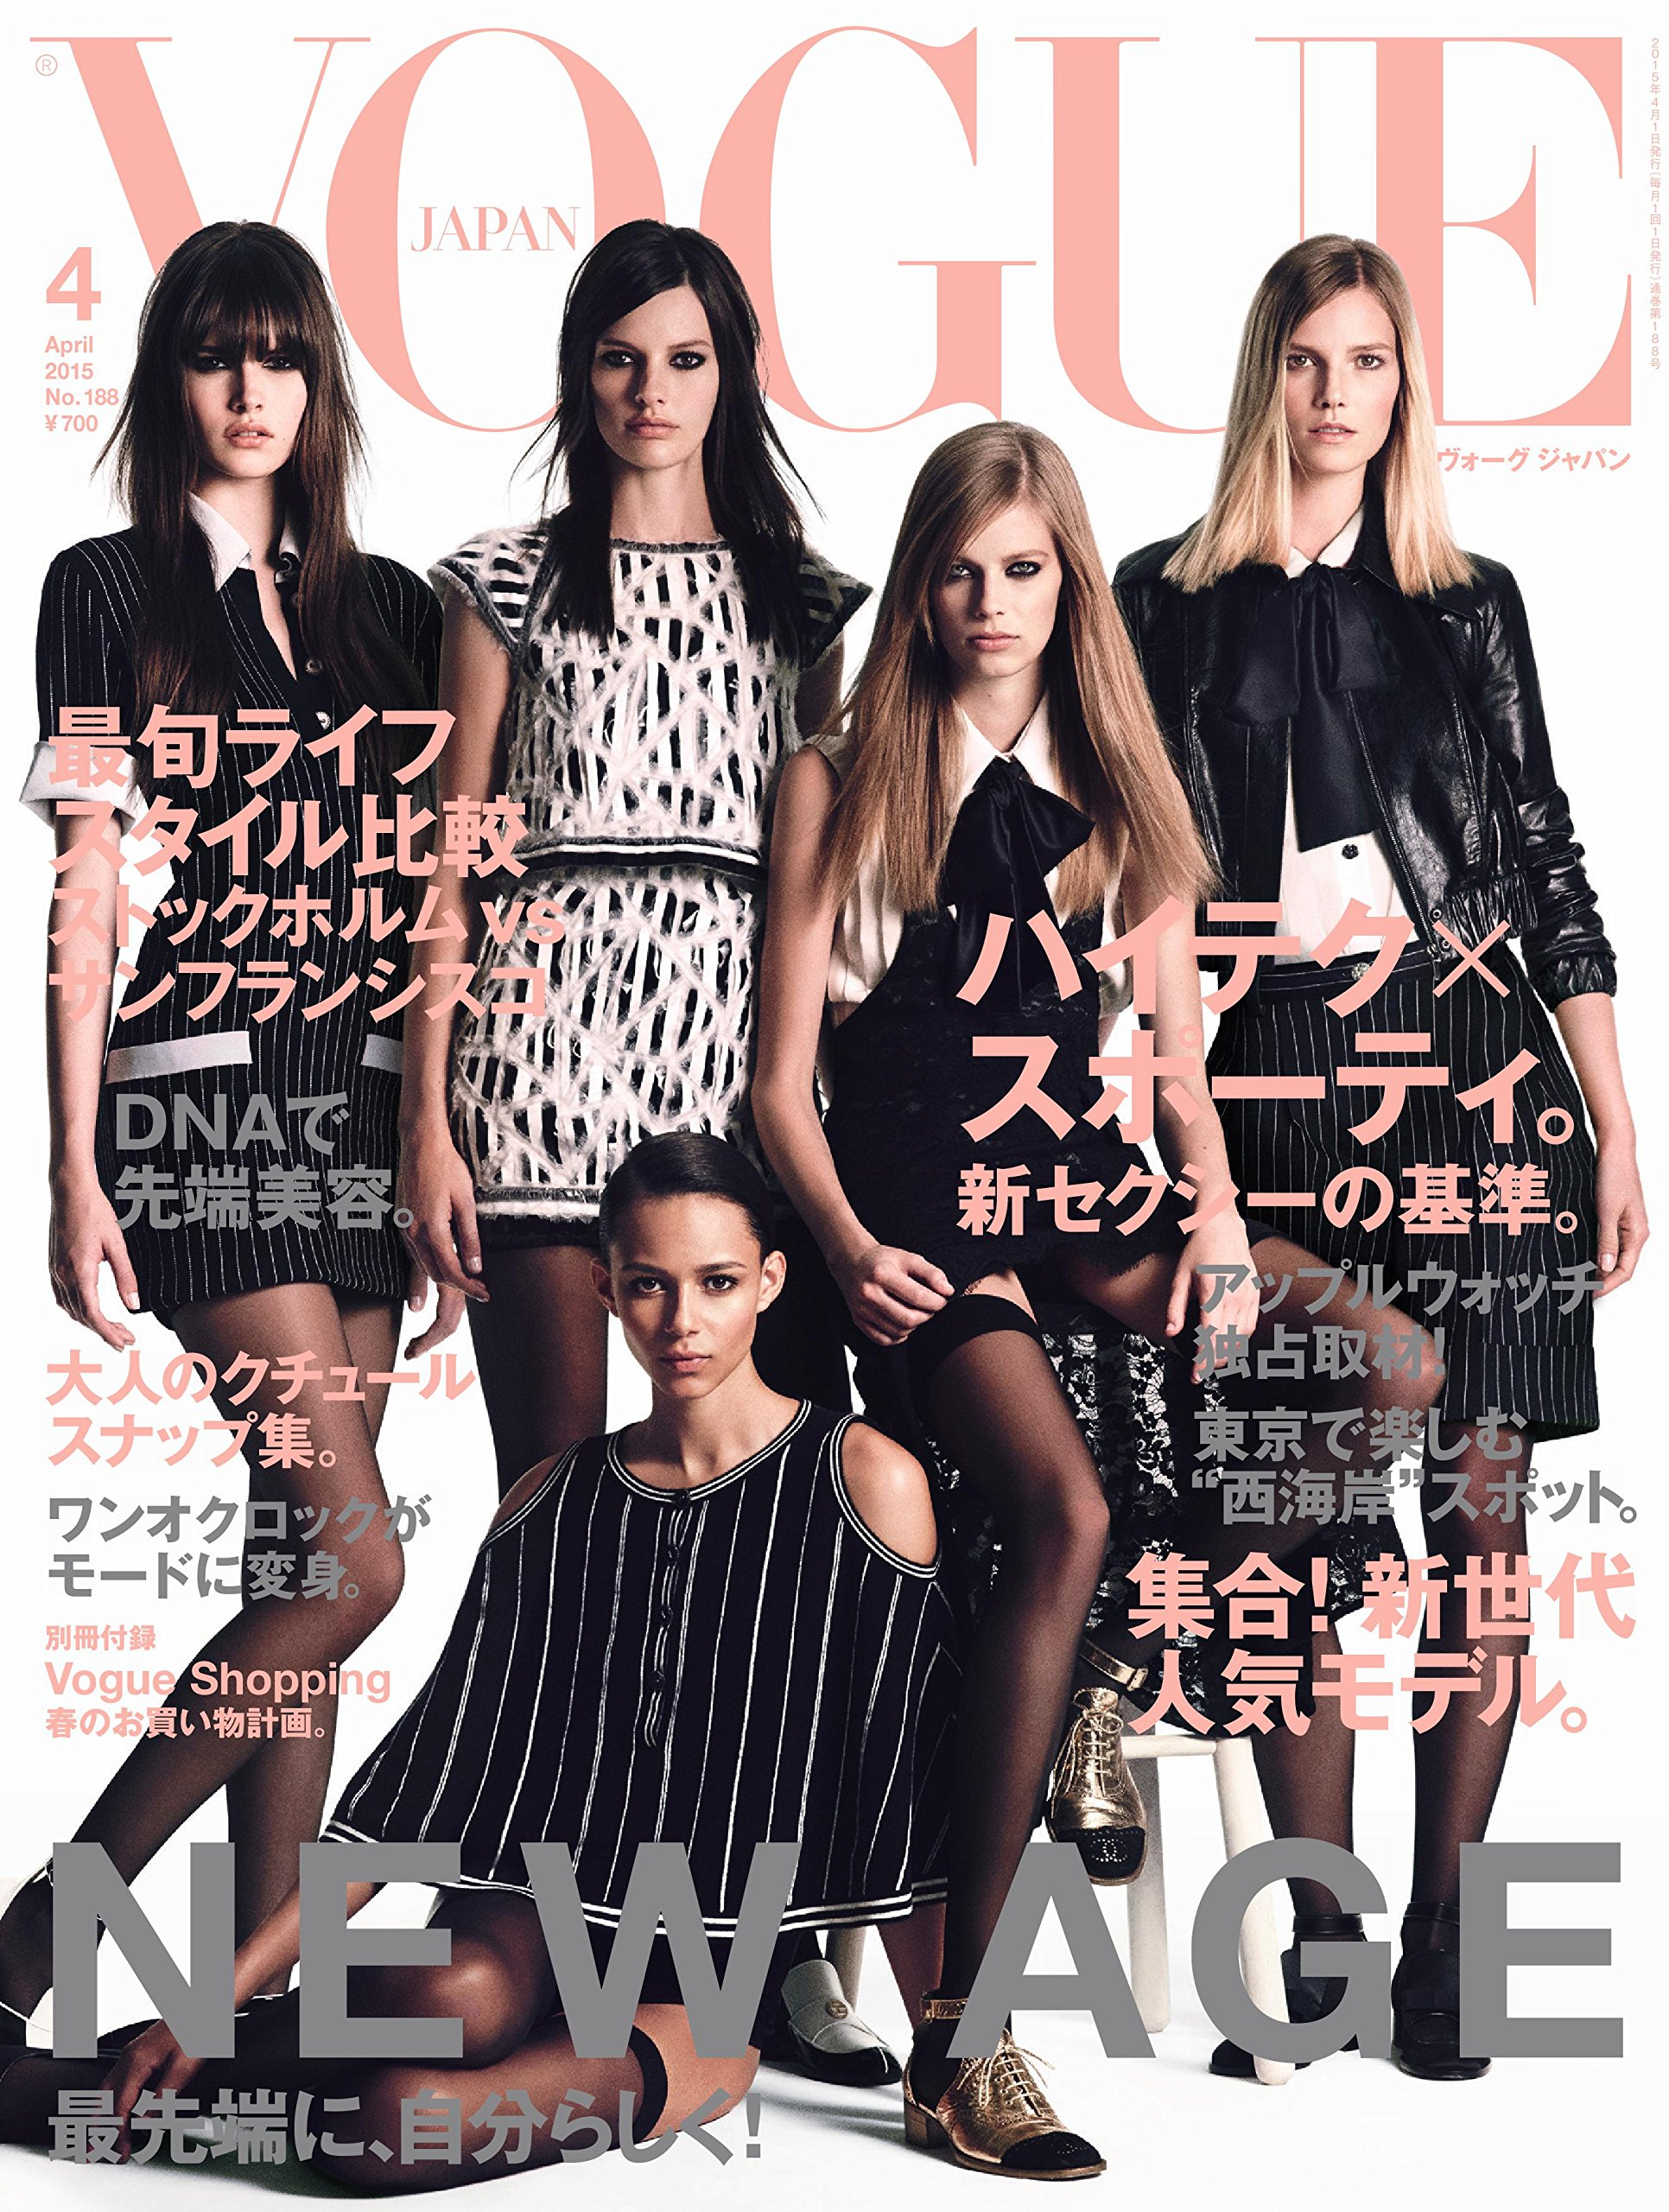 img models amanda murphy vogue japan april 2015